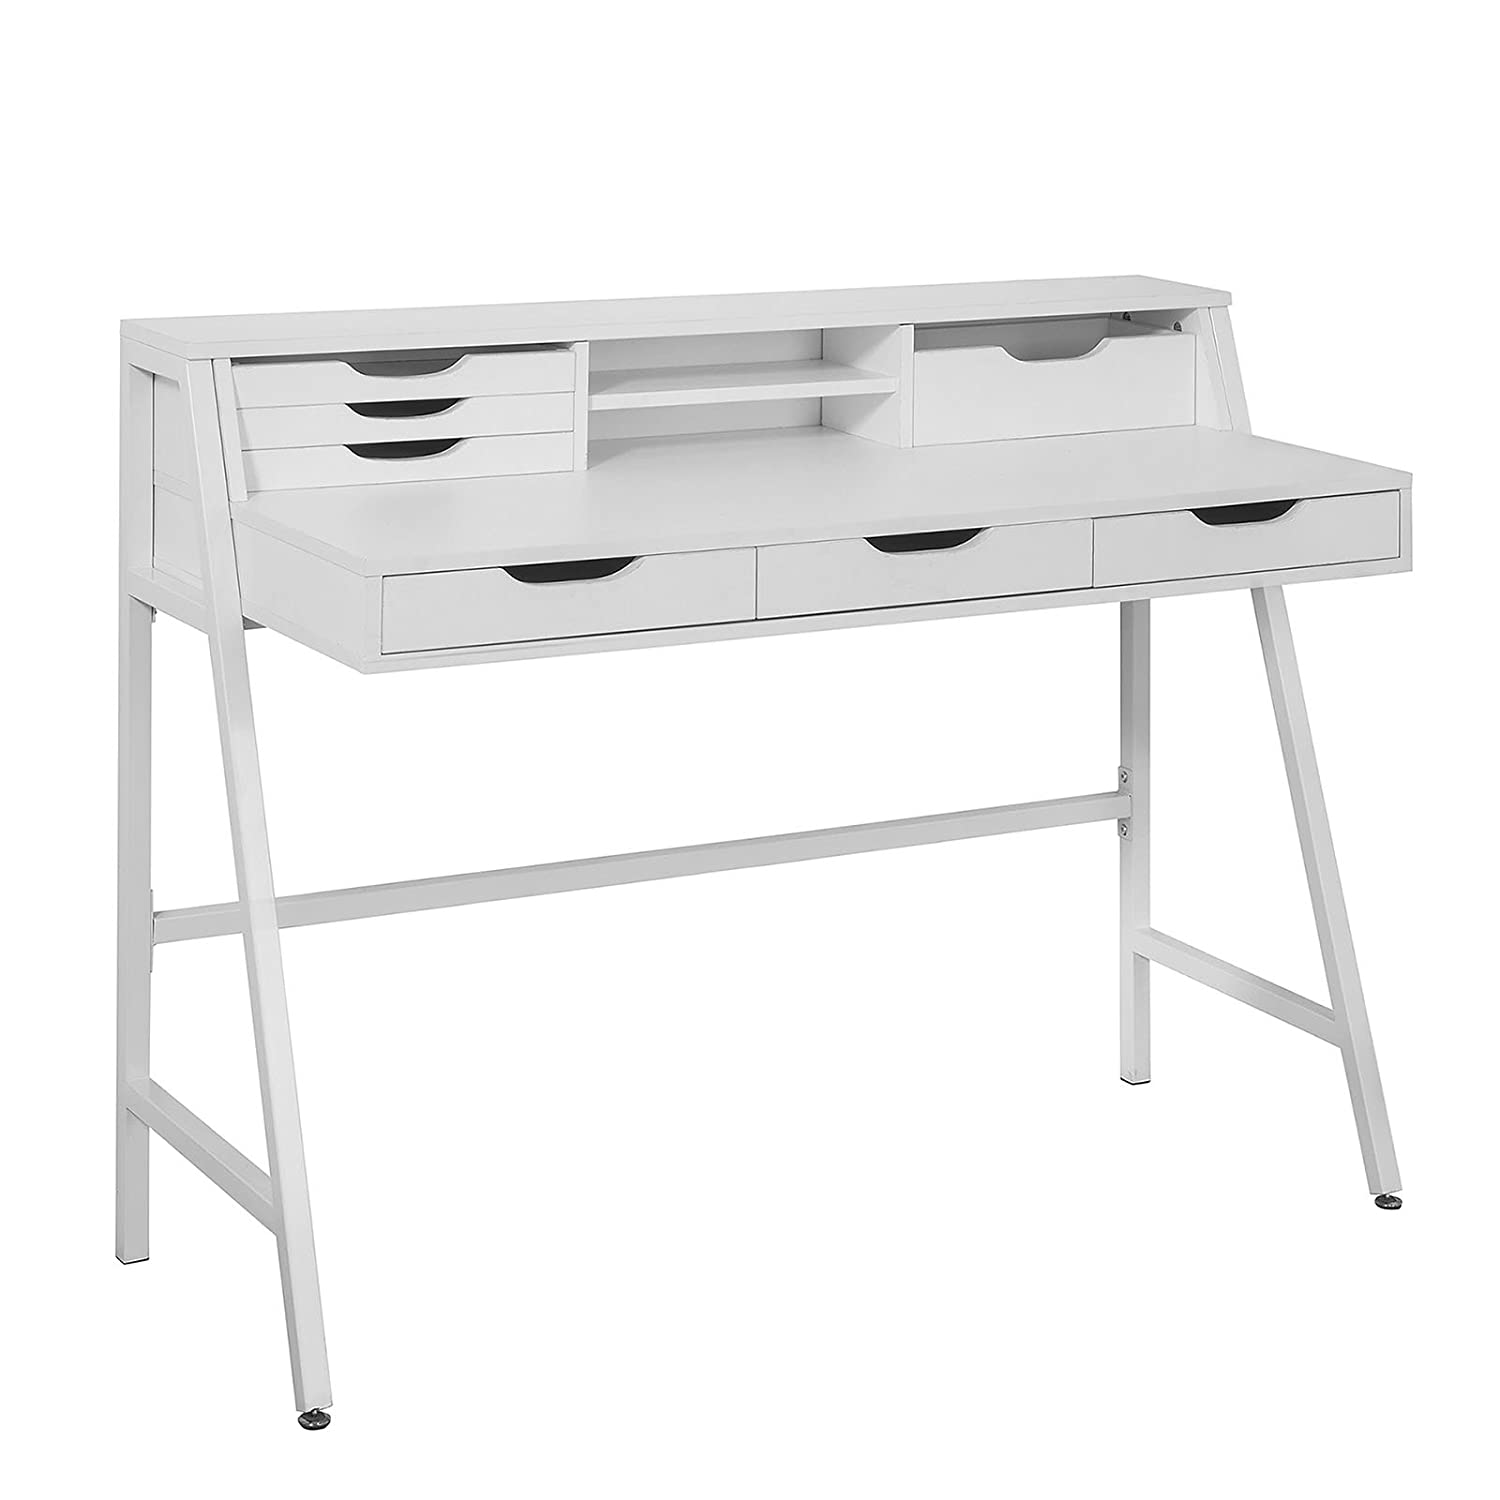 SoBuy FWT45-W, Computer Desk Reading Desk Home Office Table Desk Workstation with Storage Shelves